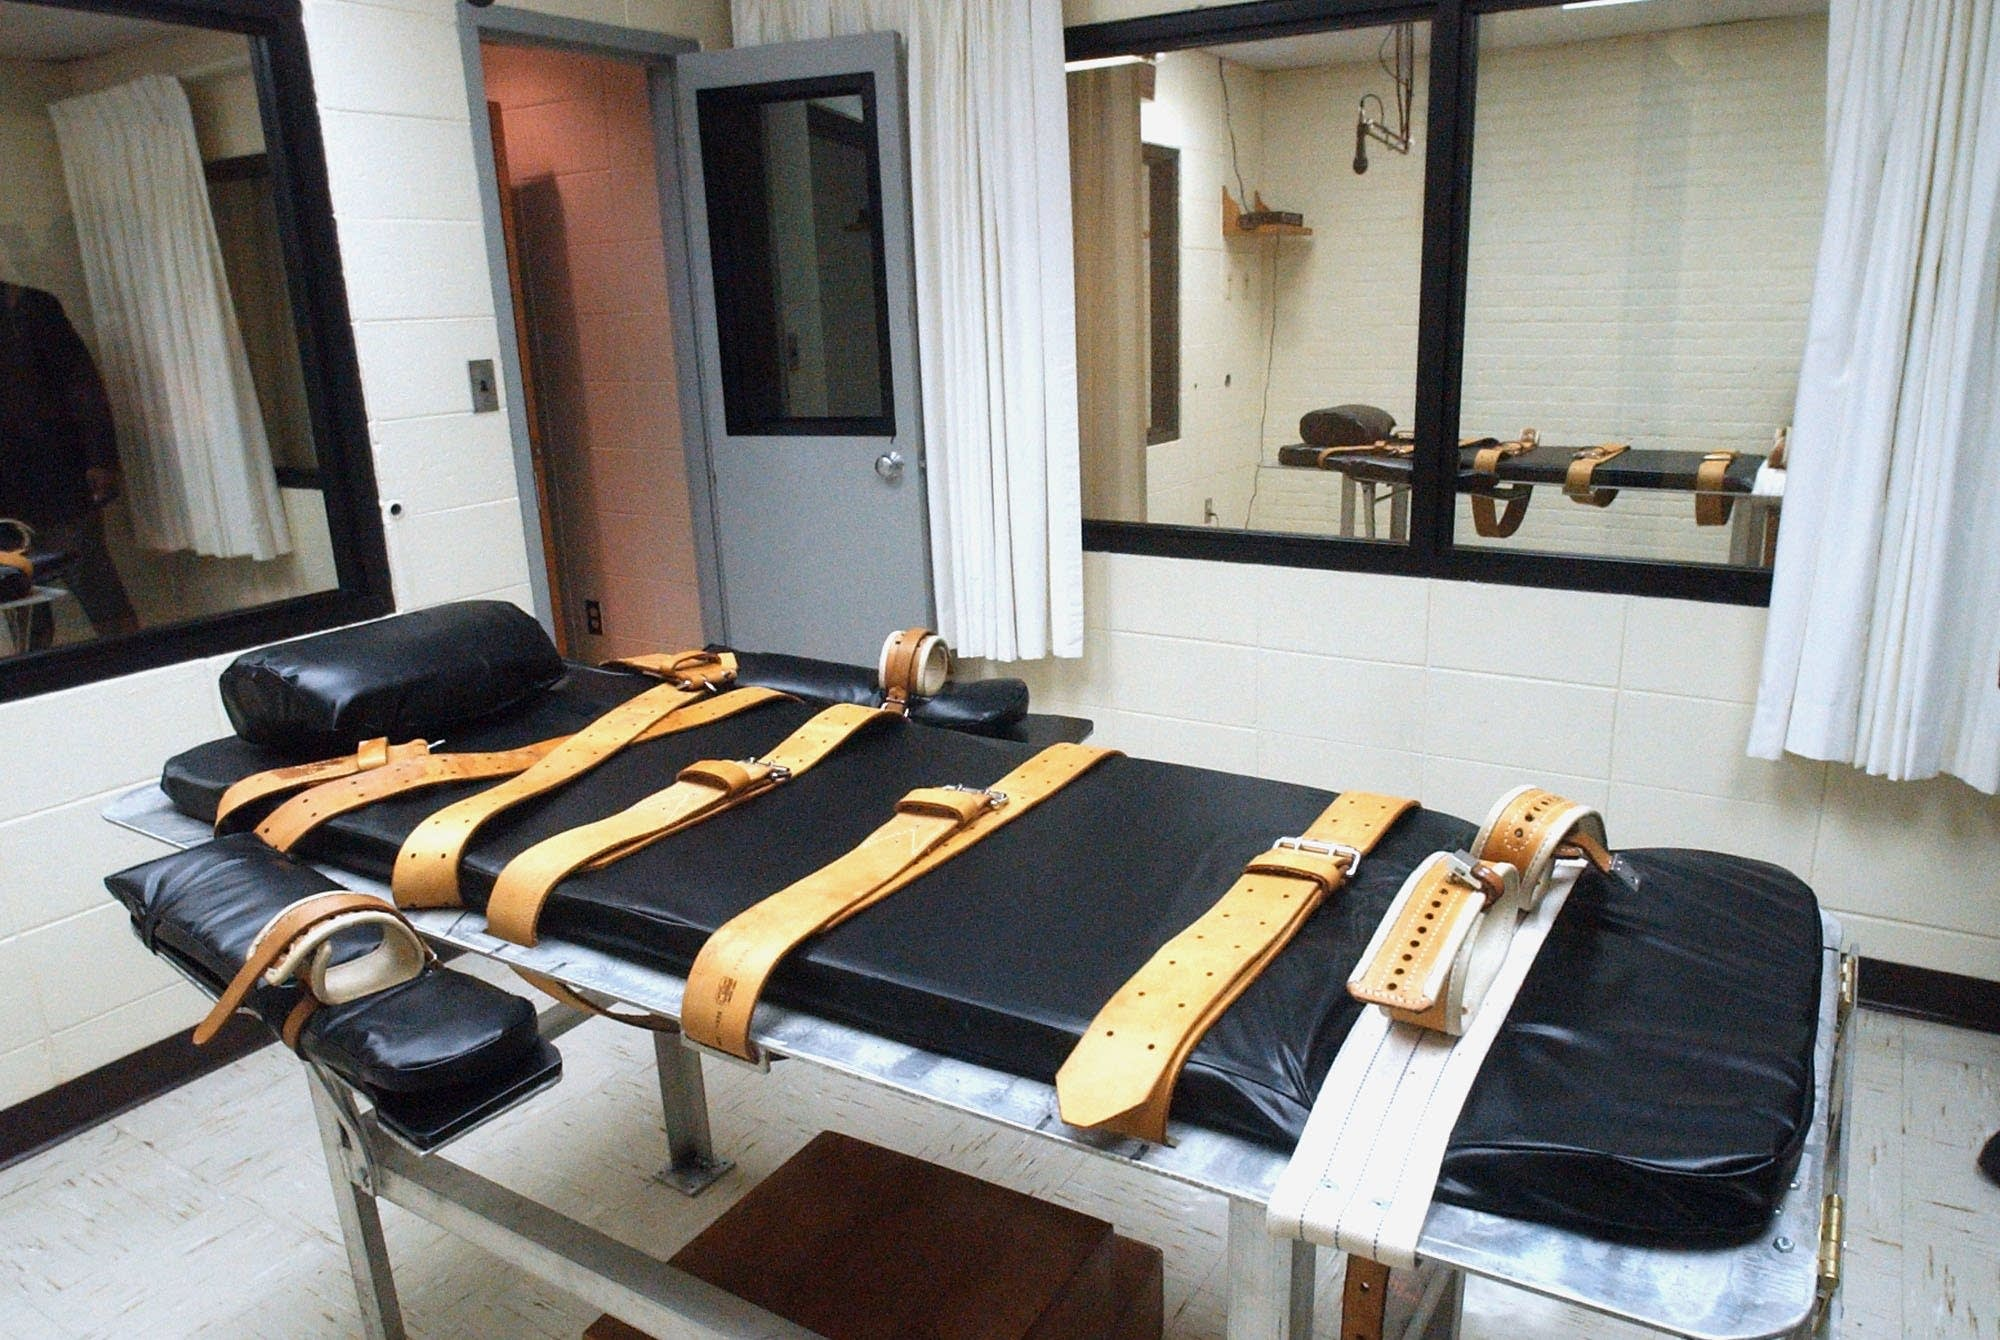 lethal injection room, Mississippi State Penitentiary in Parchman.